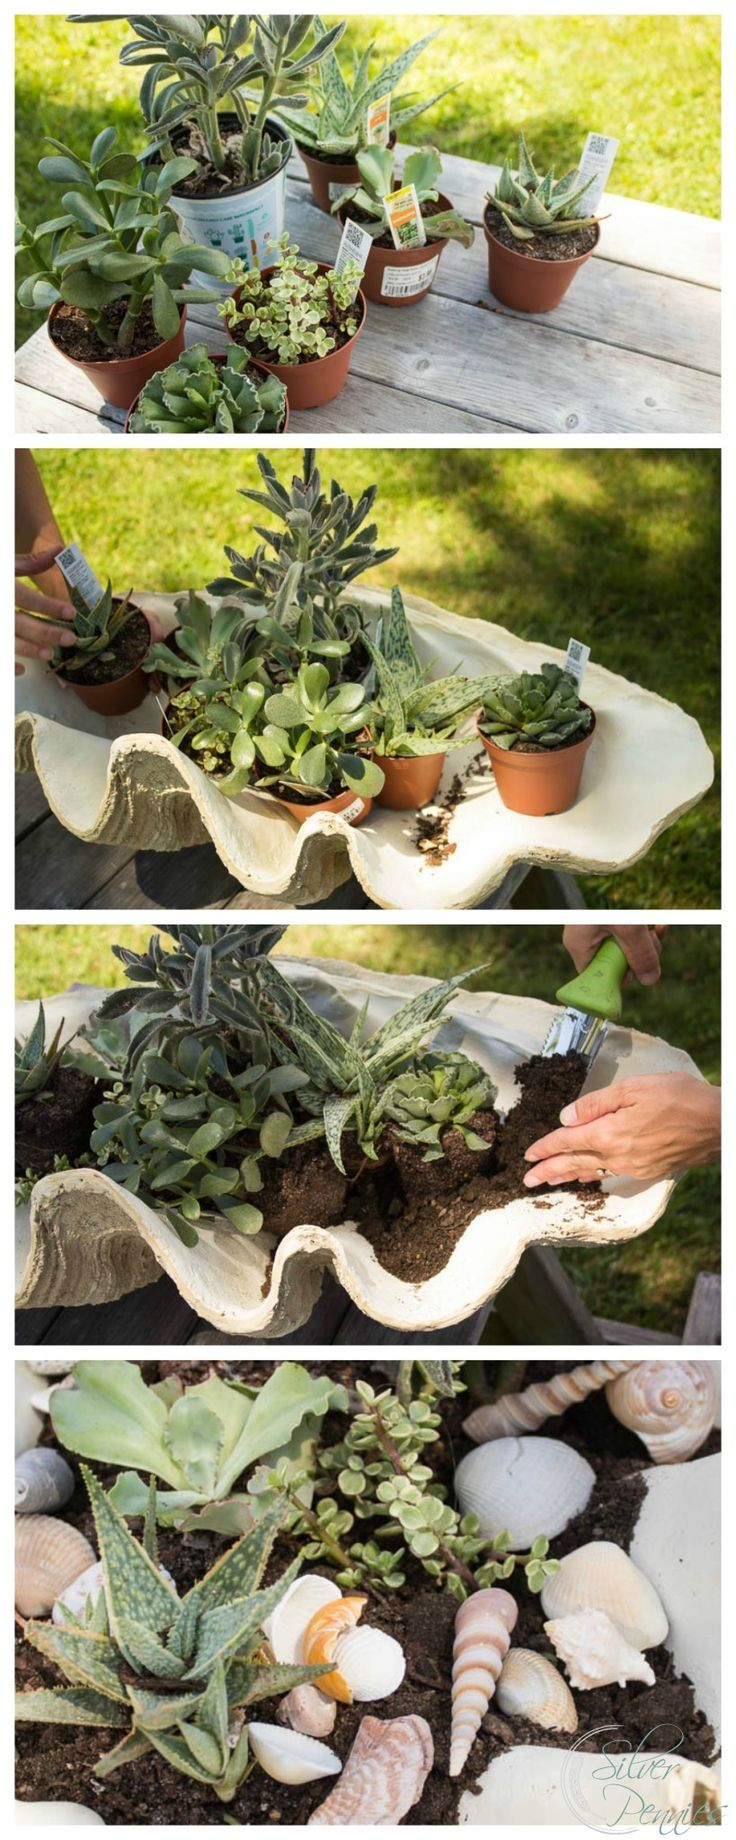 Steps for Creating a DIY Succulent Planter #sponsored